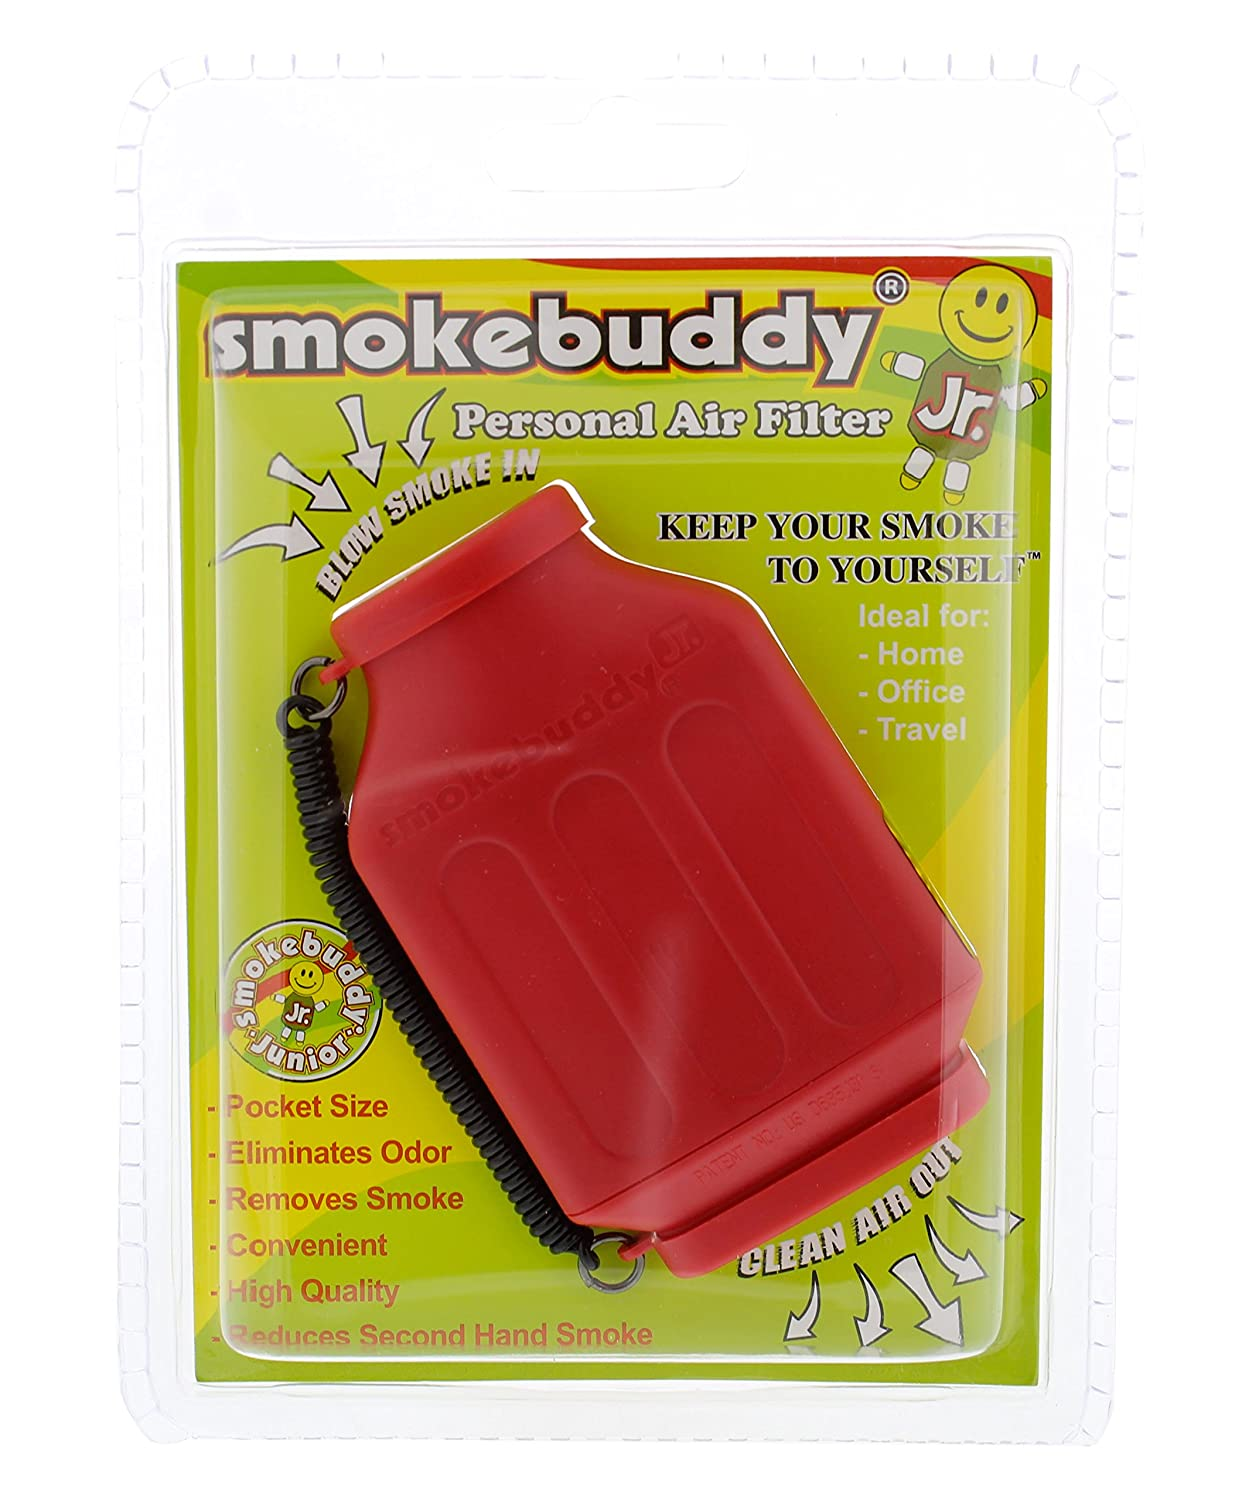 Green smokebuddy Jr Personal Air Filter Smoke Buddy smokebuddy Jr Green